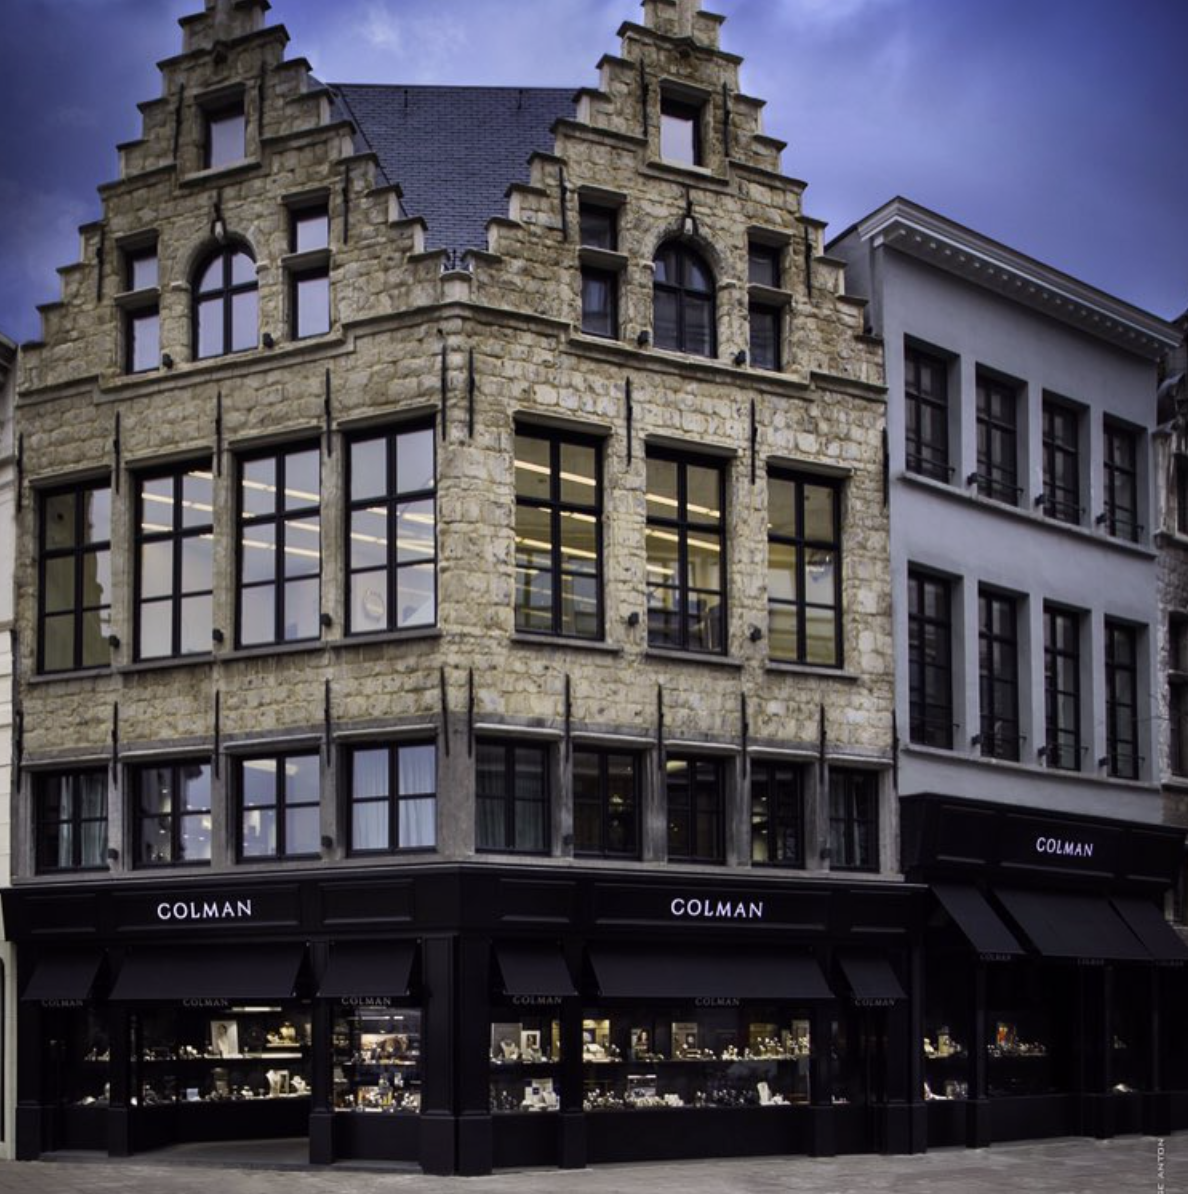 Come visit our amazing shop in Antwerp and les us guide you in the fabulous world of luxury! @colmanwatches